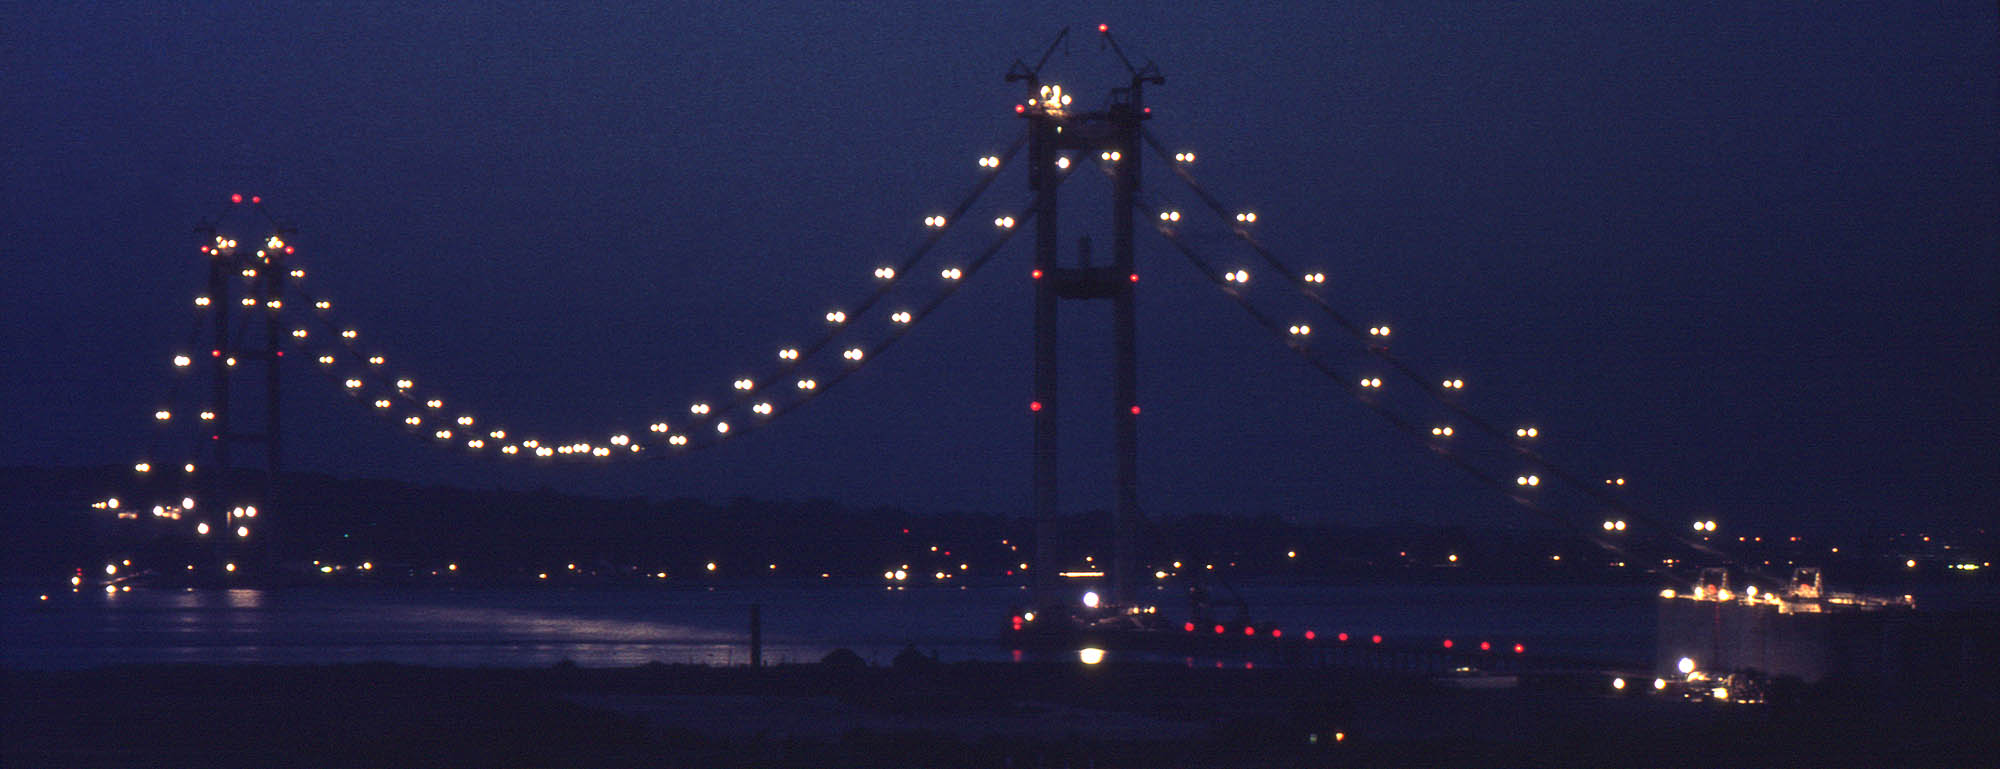 The Humber Bridge under construction - in September lit catwalks highlighted the working area for spinning the main cables